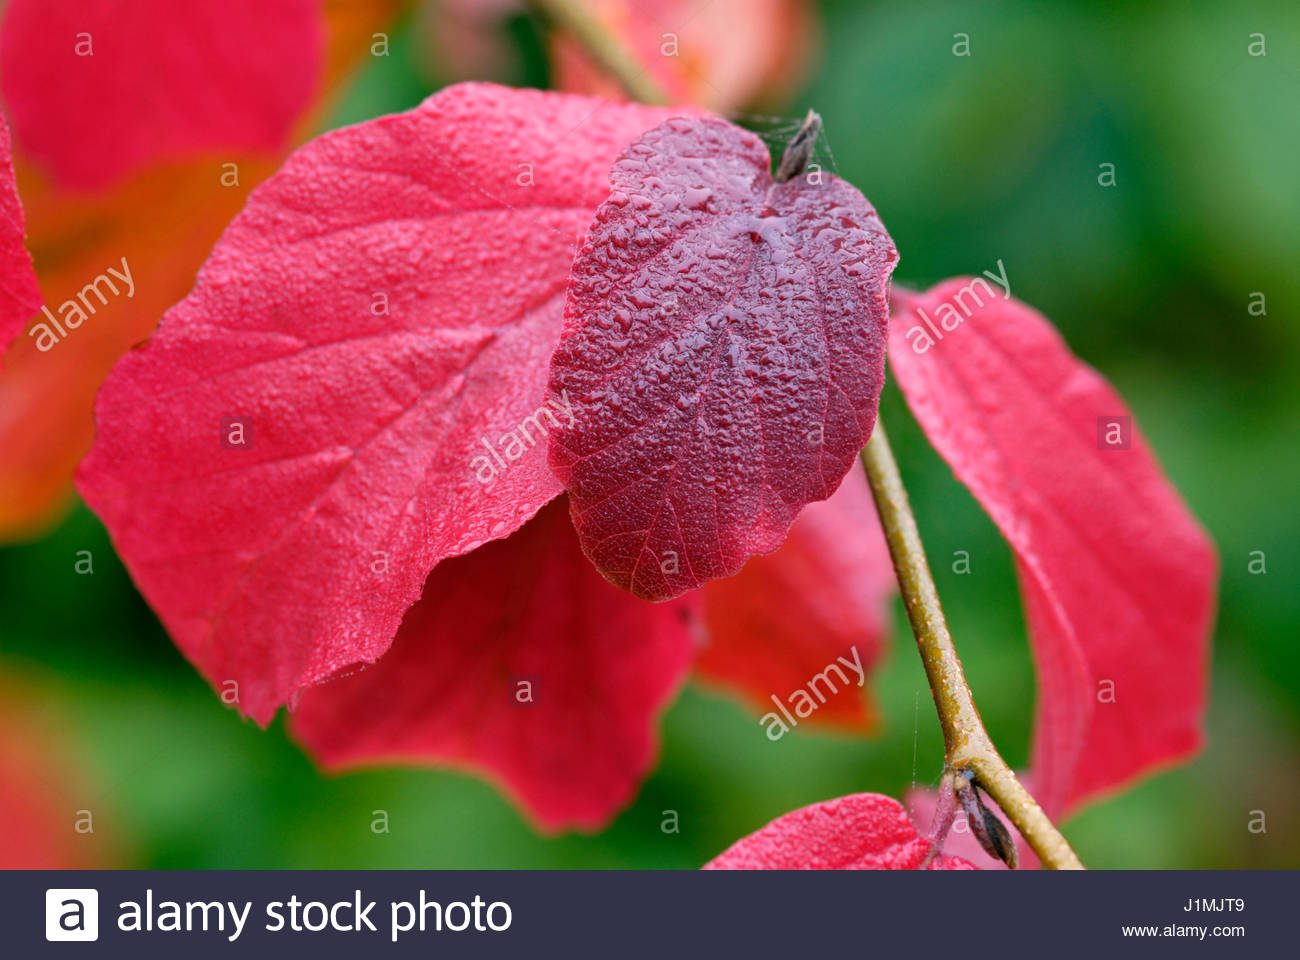 WATER DROPLETS ON AUTUMN LEAVES OF PARROTIA PERSICA - Stock Image